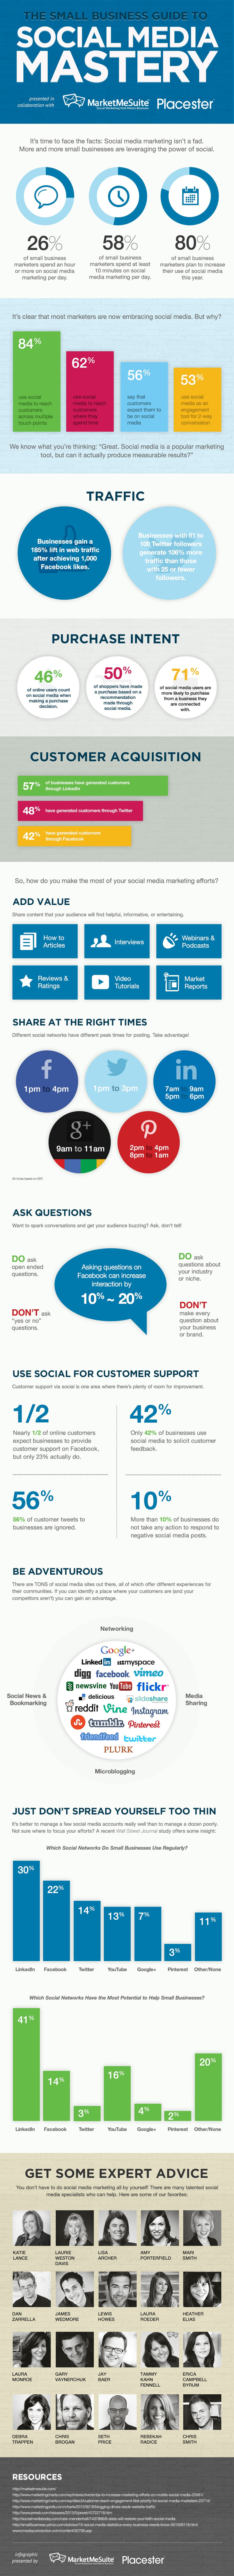 Small Business Guide To Social Media Mastery [Infographic]